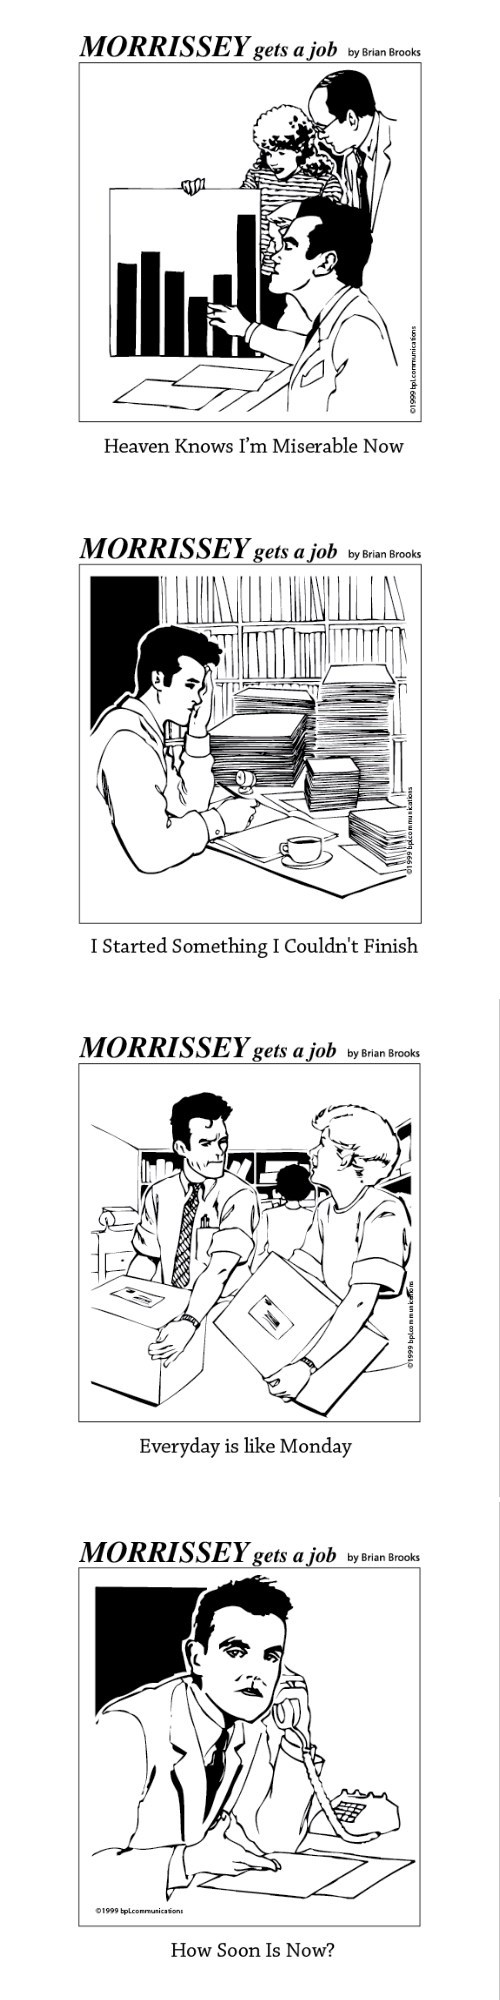 lyrics morrisey web comics existential monday thru friday Music g rated